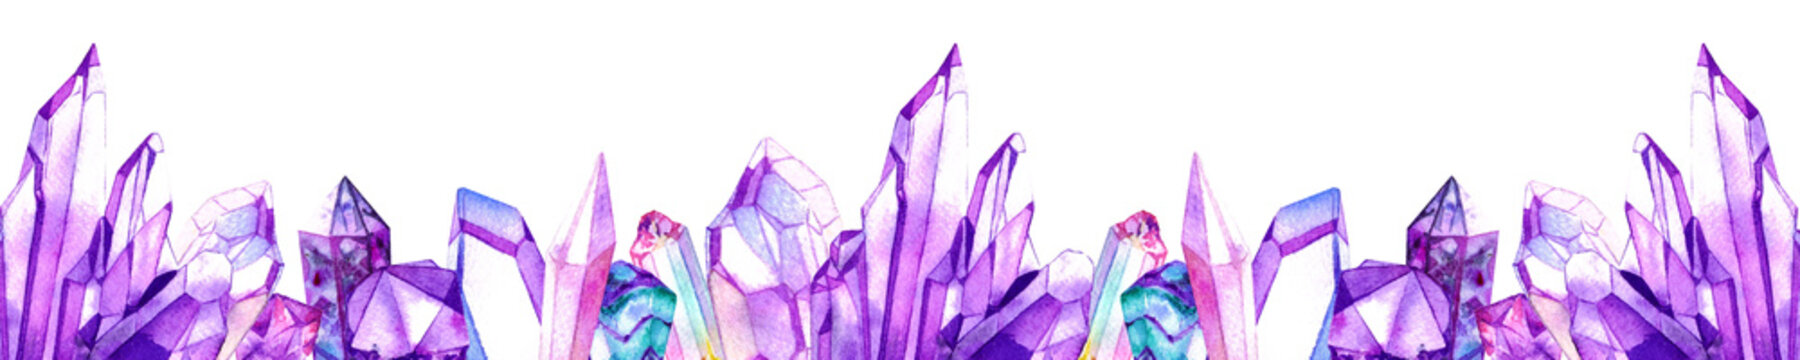 Purple watercolor crystal gems frame. Hand drawn illustration isolated on white background.